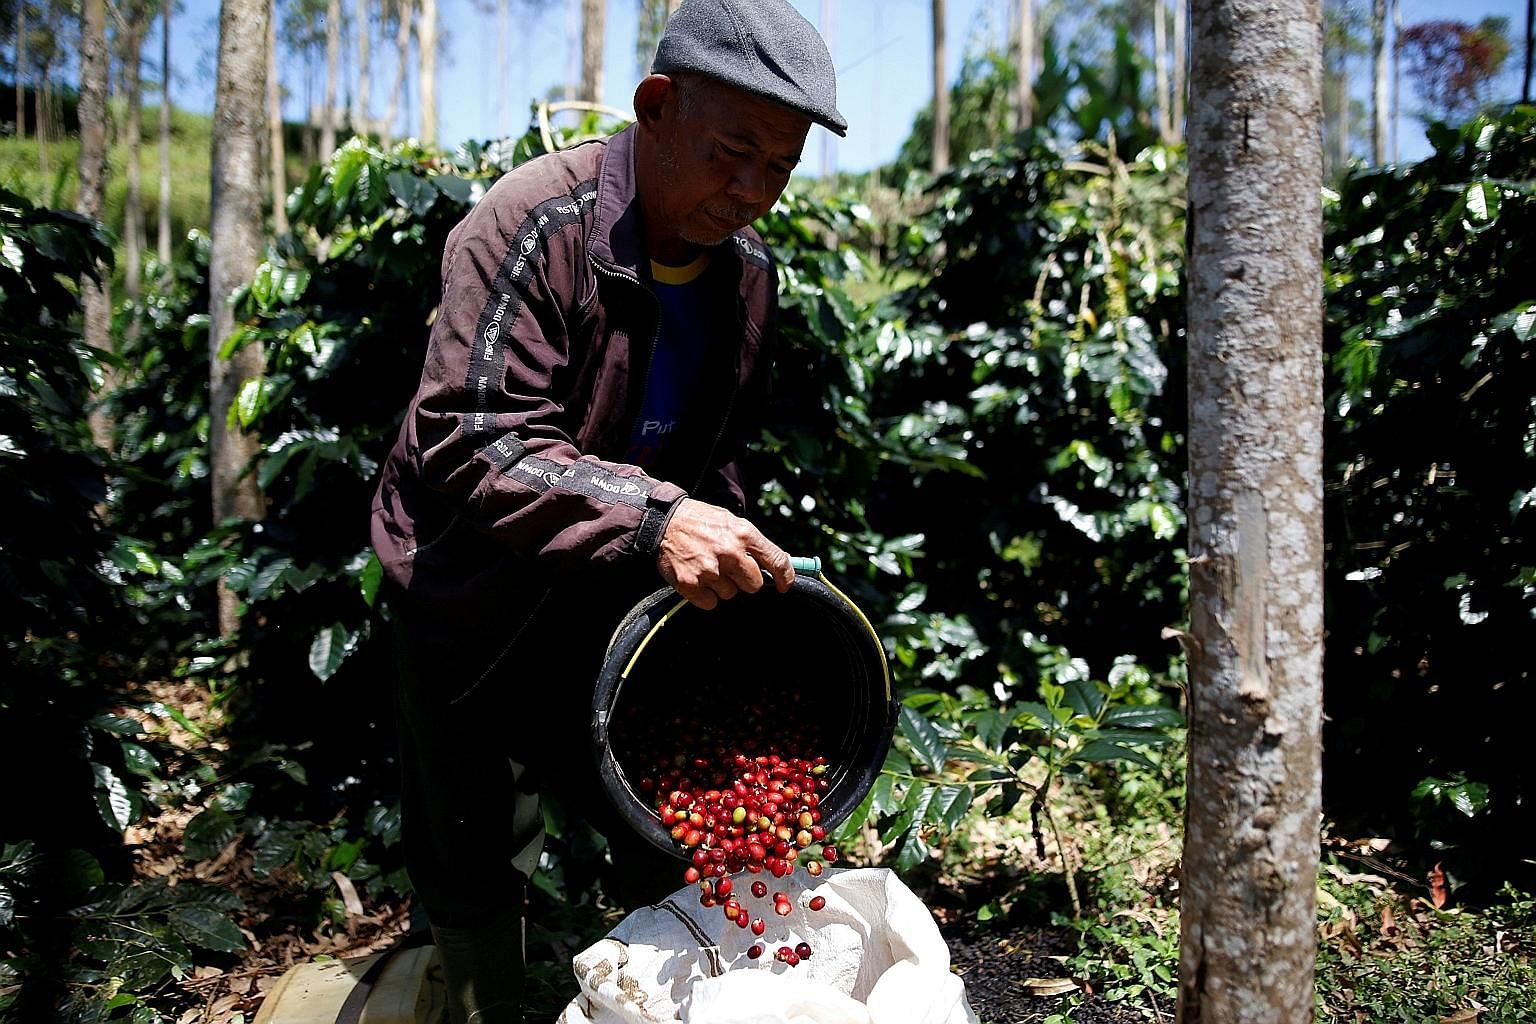 A worker harvests Arabica coffee cherries in a plantation in West Java. Arabica coffee is popular with coffee drinkers worldwide but Indonesian coffee plantations are not growing enough. Some 90 per cent of the coffee produced in Indonesia is the Rob